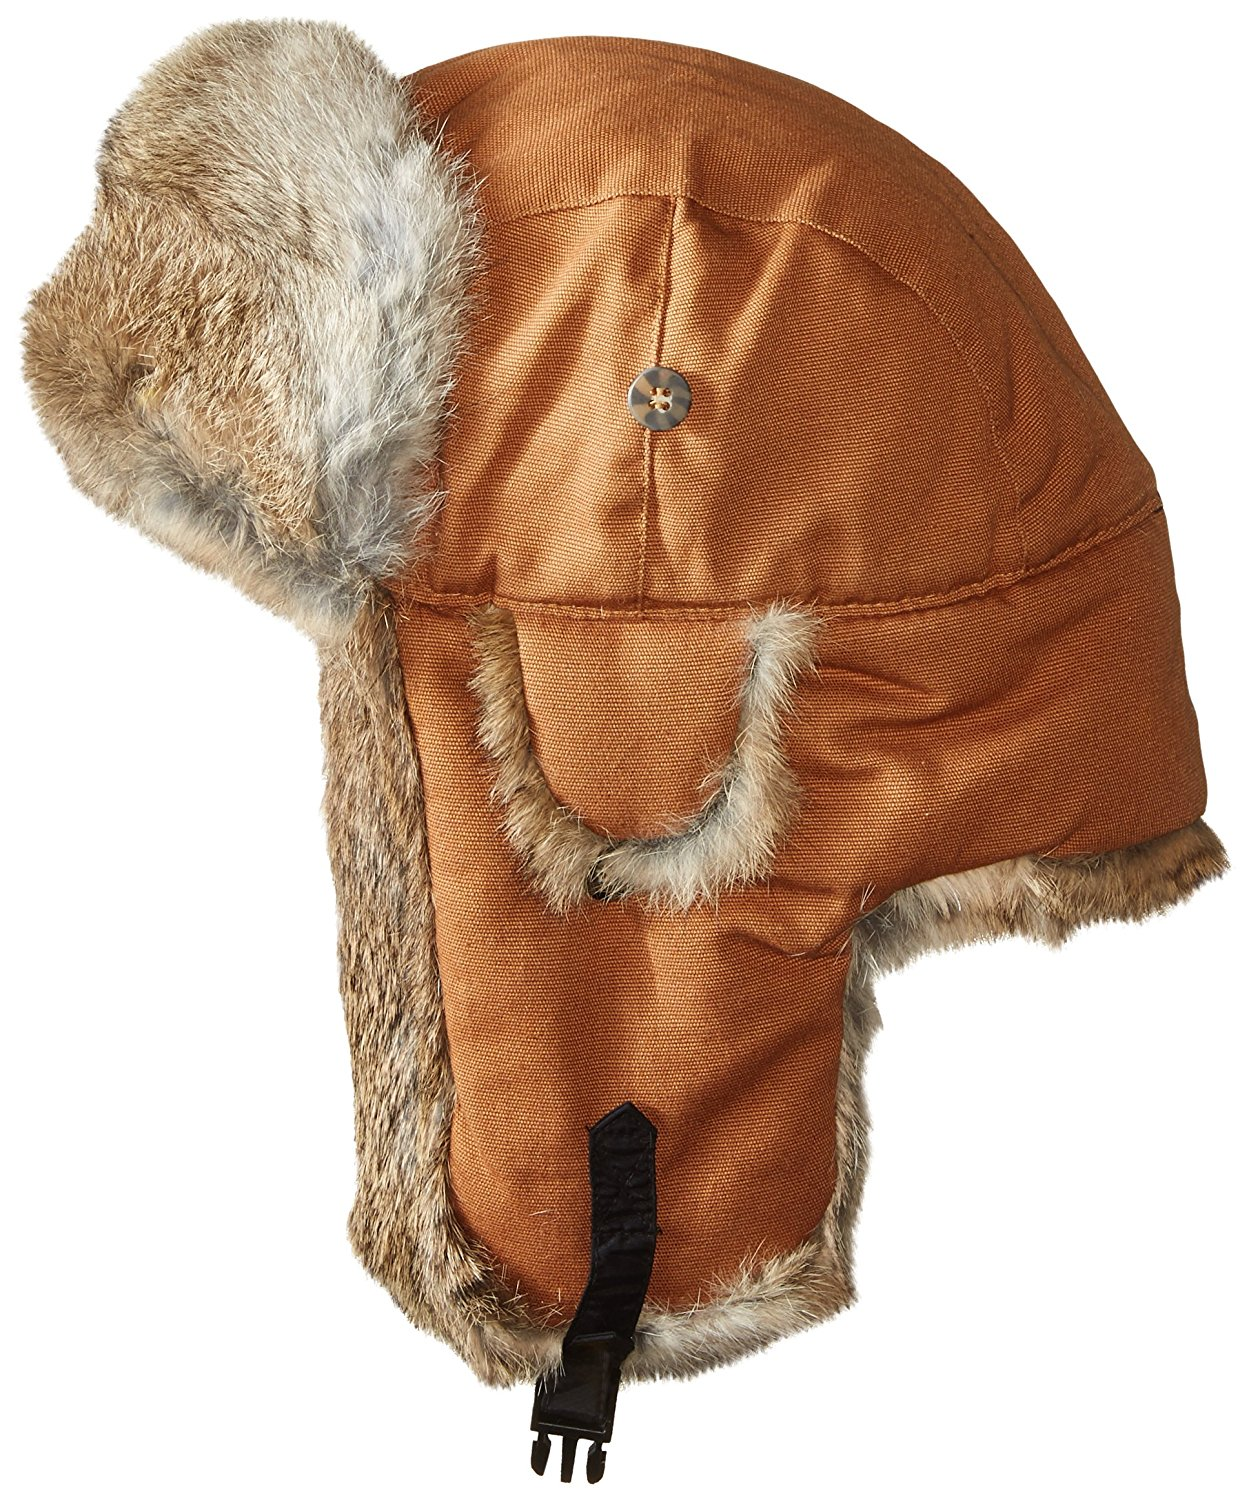 8f2c3dd1956b01 Get Quotations · Mad Bomber Canvas Bomber Hat with Real Rabbit Fur, Rust,  Large